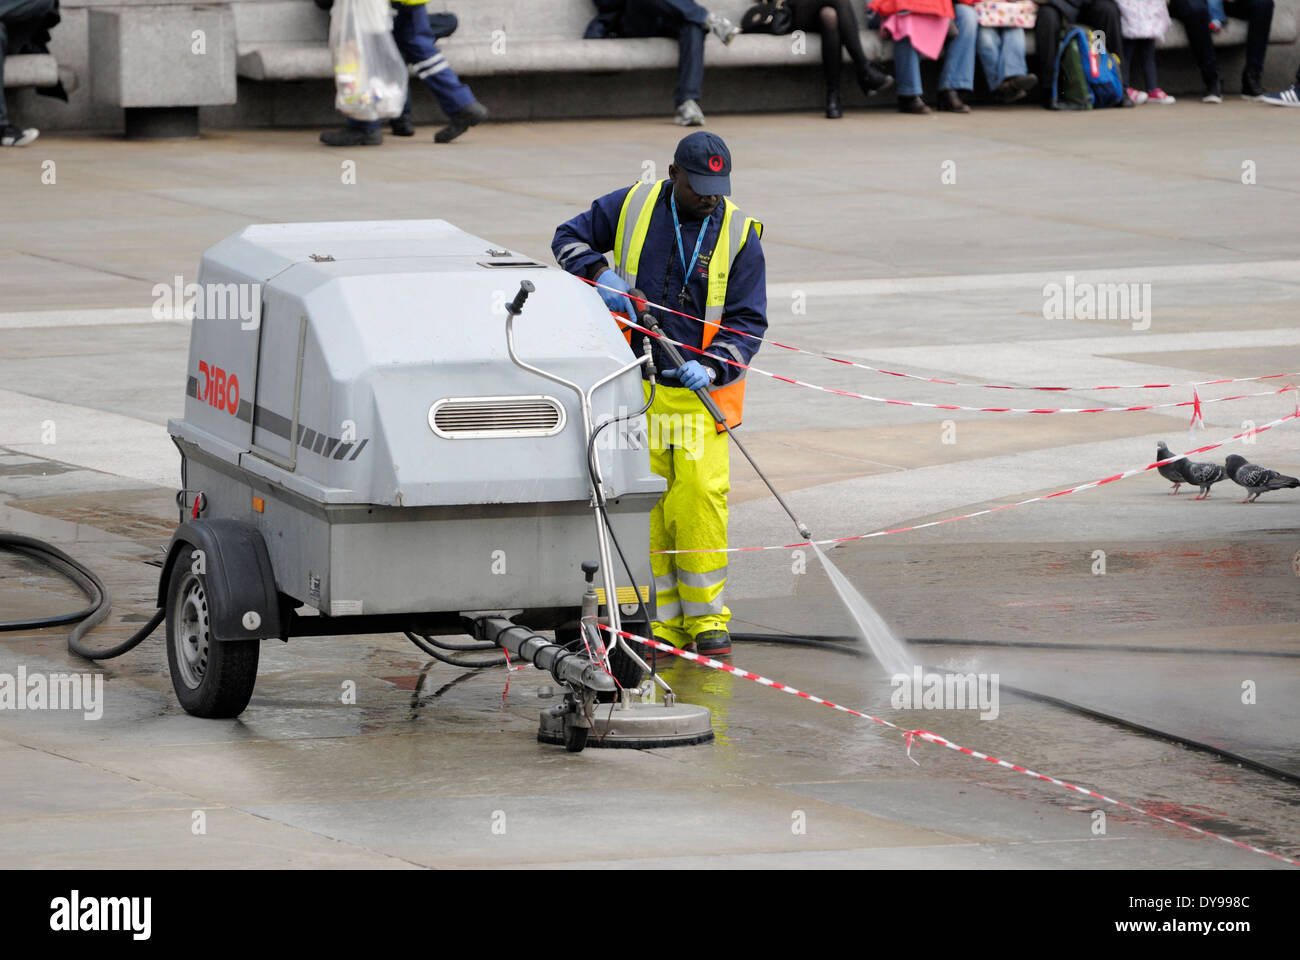 London, England, UK. Worker cleaning Trafalgar Square with high pressure water hose - Stock Image